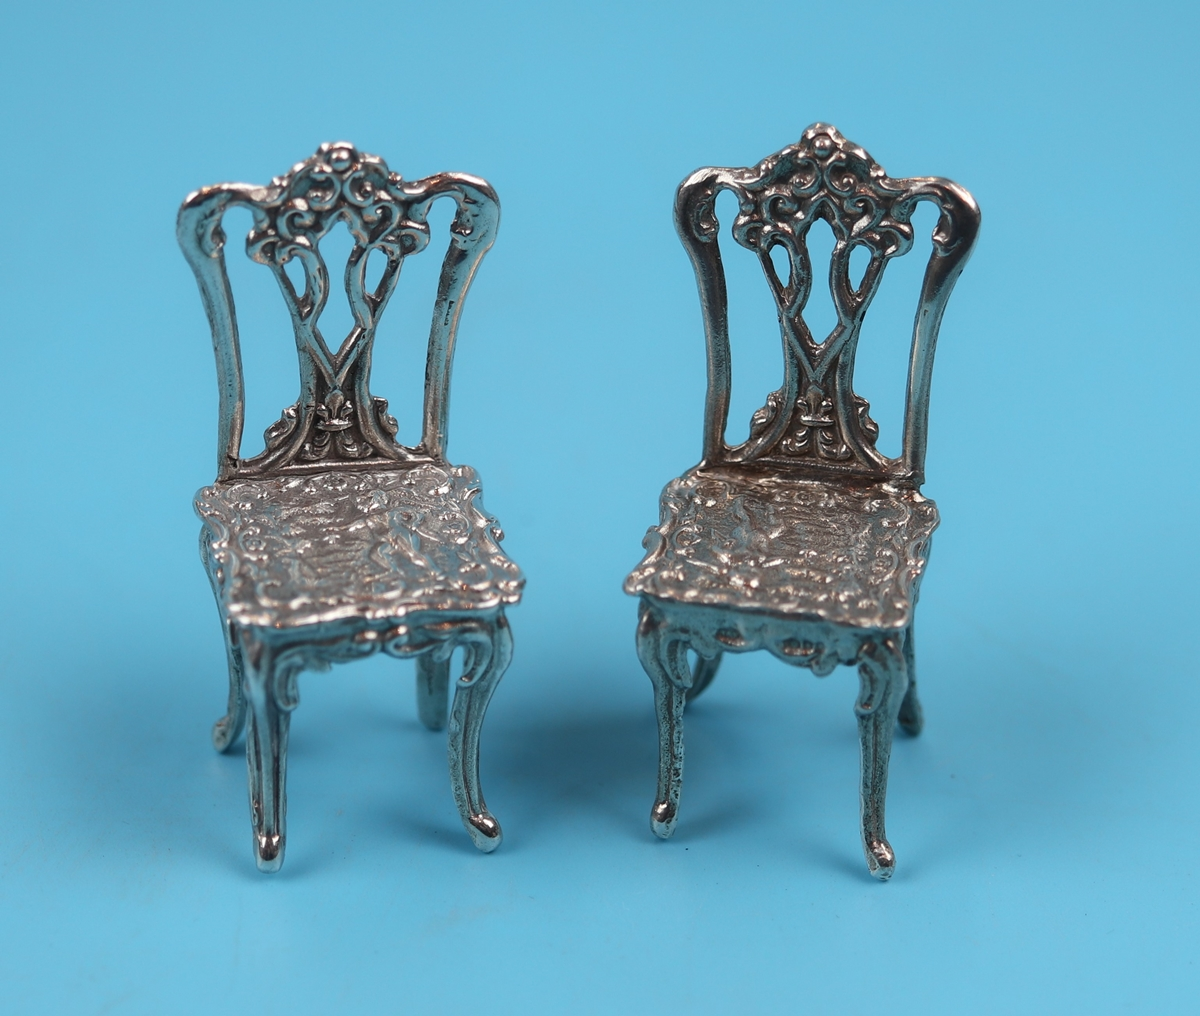 Pair of small hallmarked silver chairs - H: 5.5cm